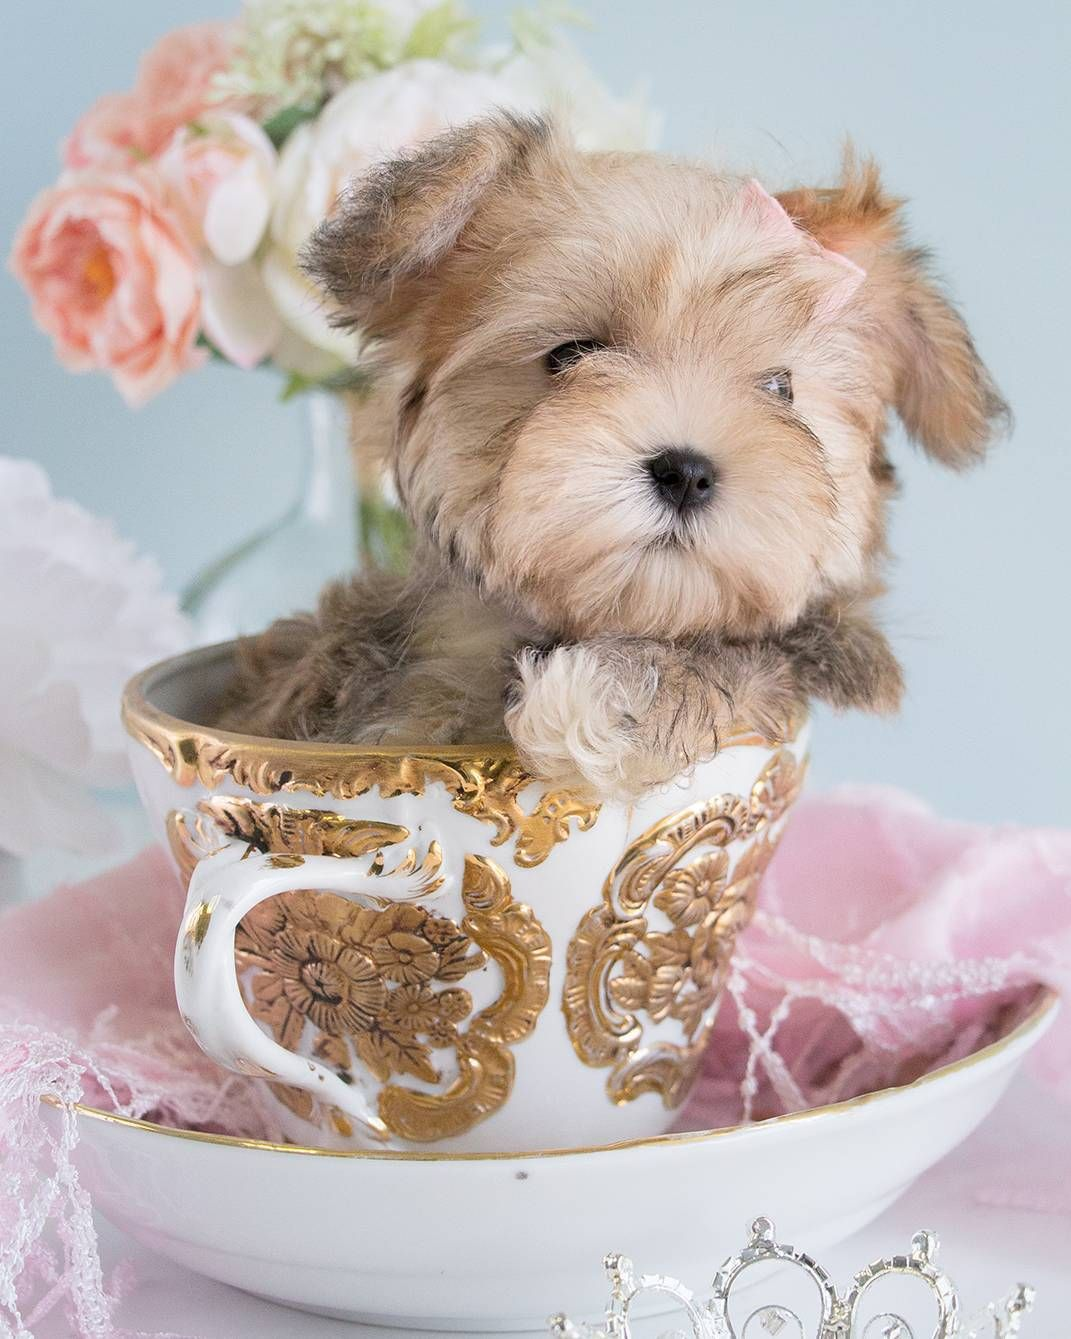 25 Teddy Bear Dog Breeds Cutest Dogs You Ever See